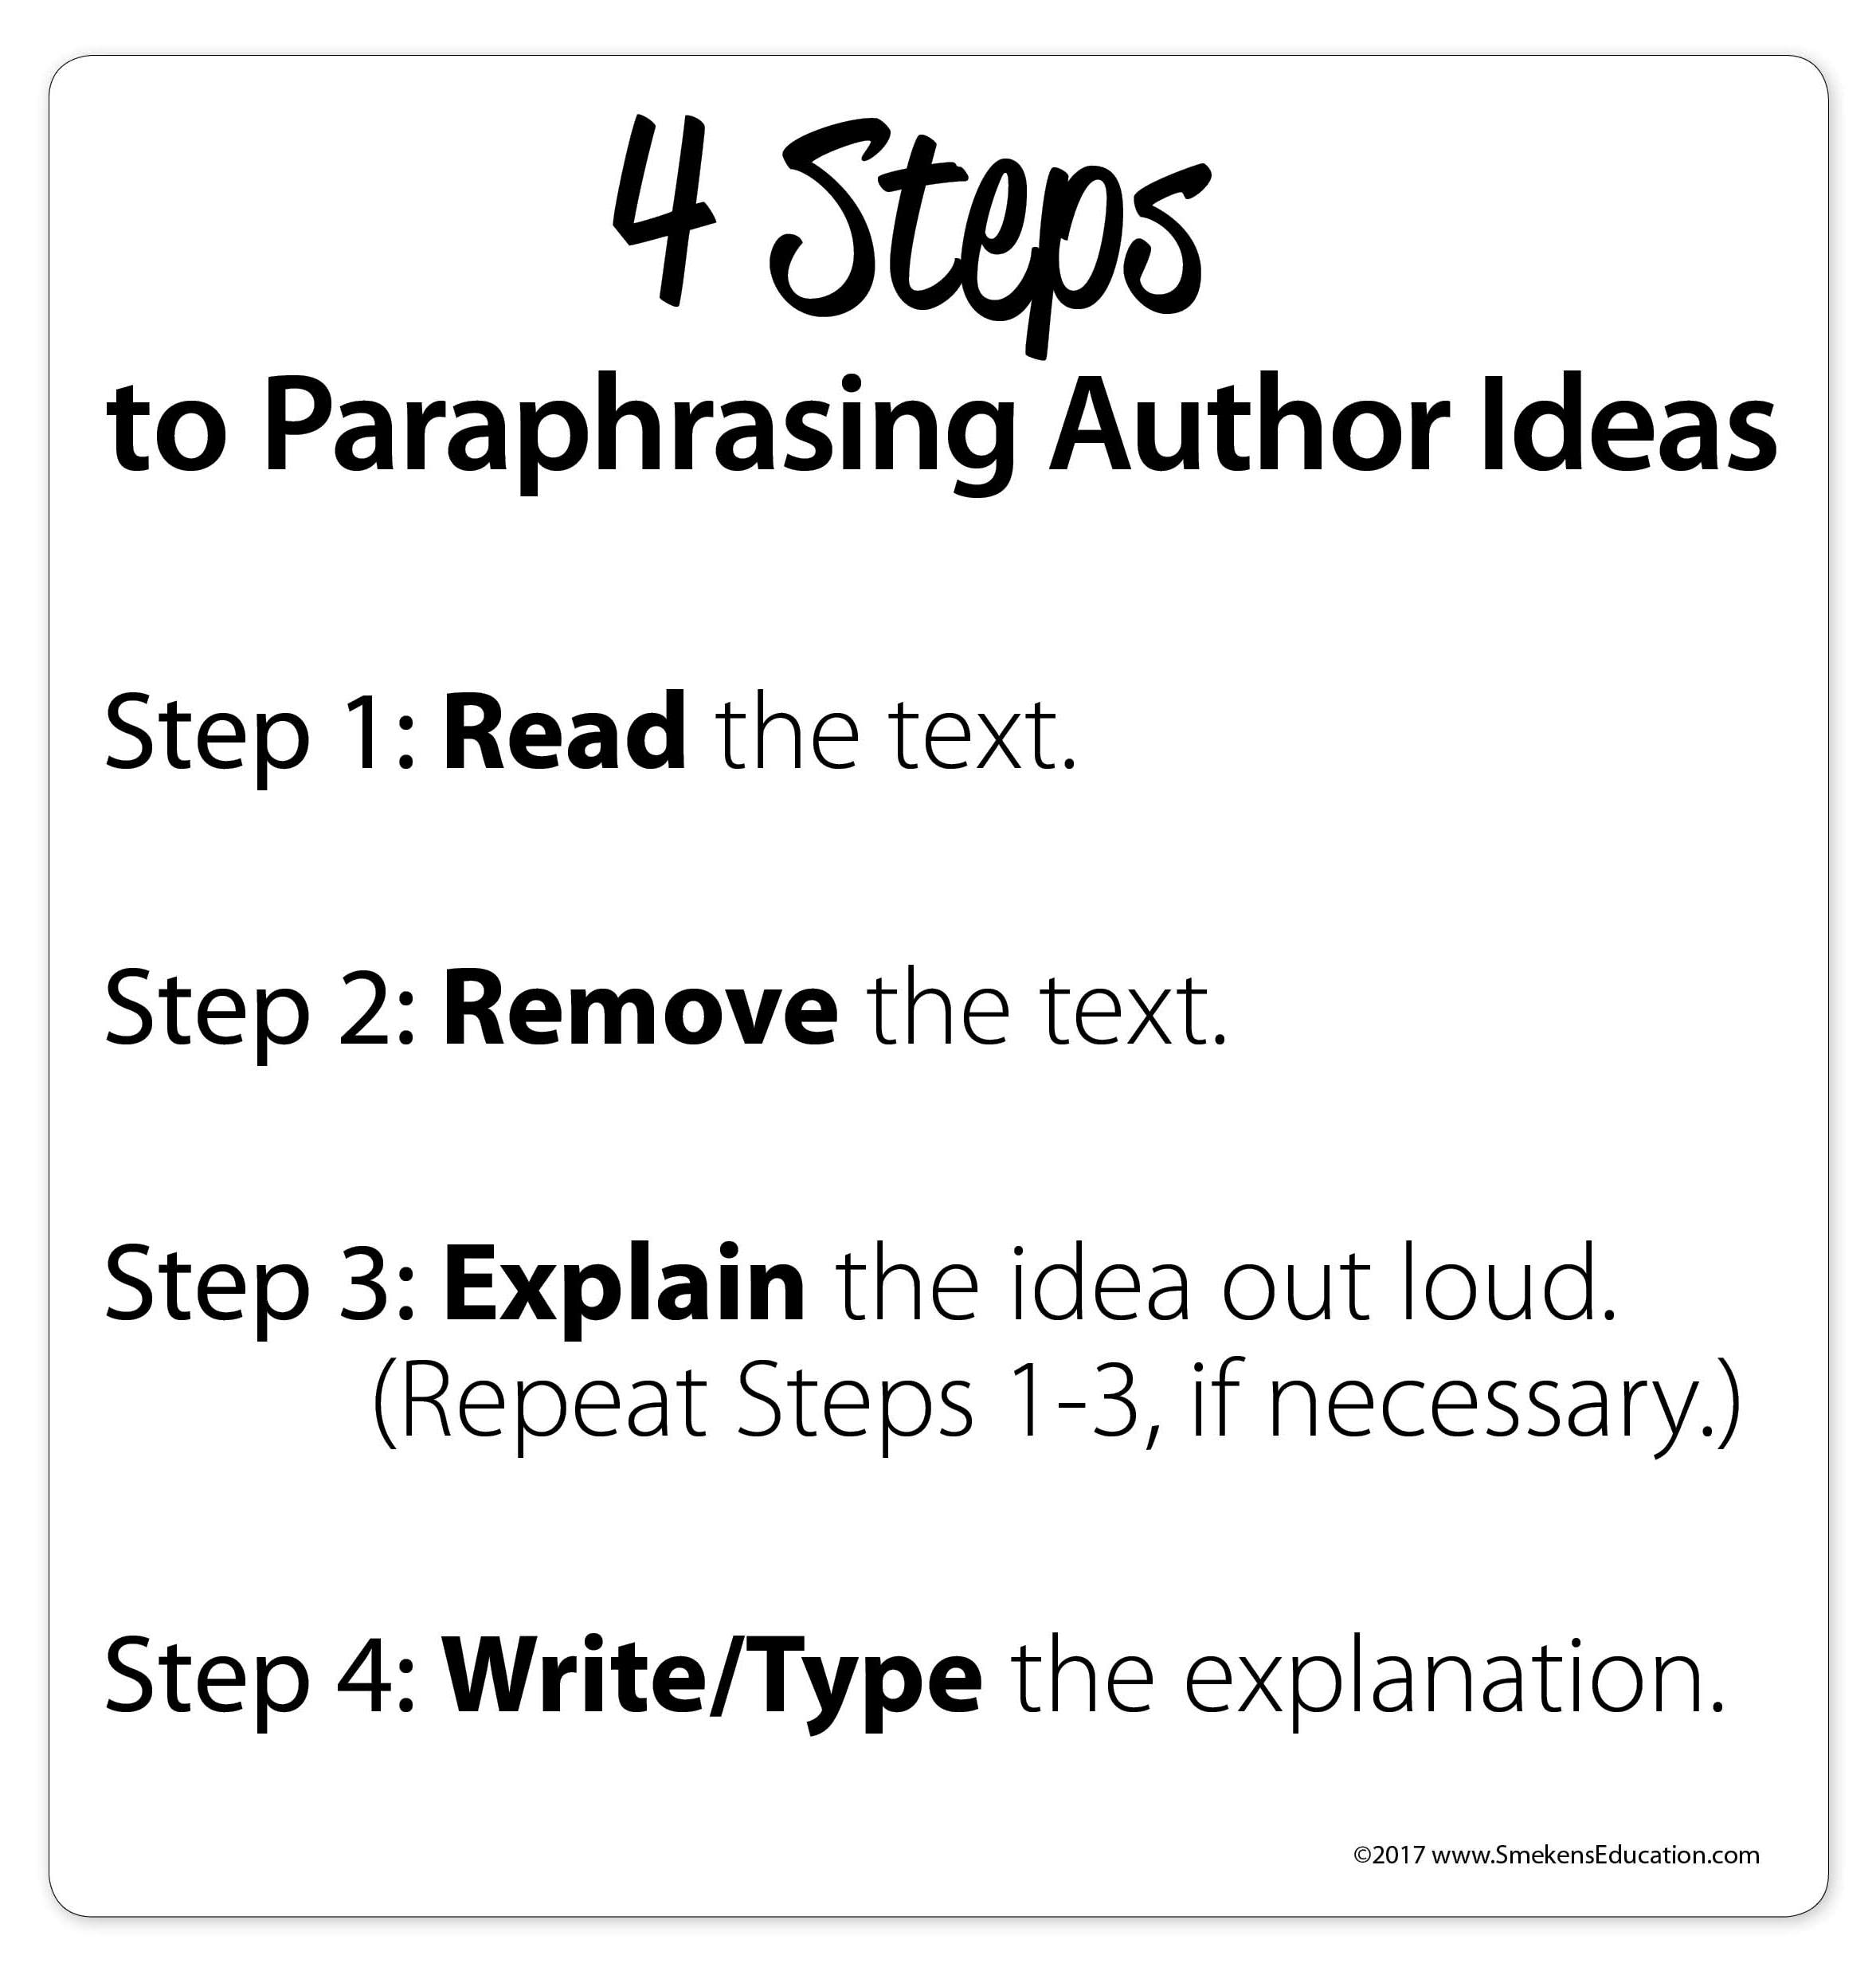 Paraphrase in 4 Steps